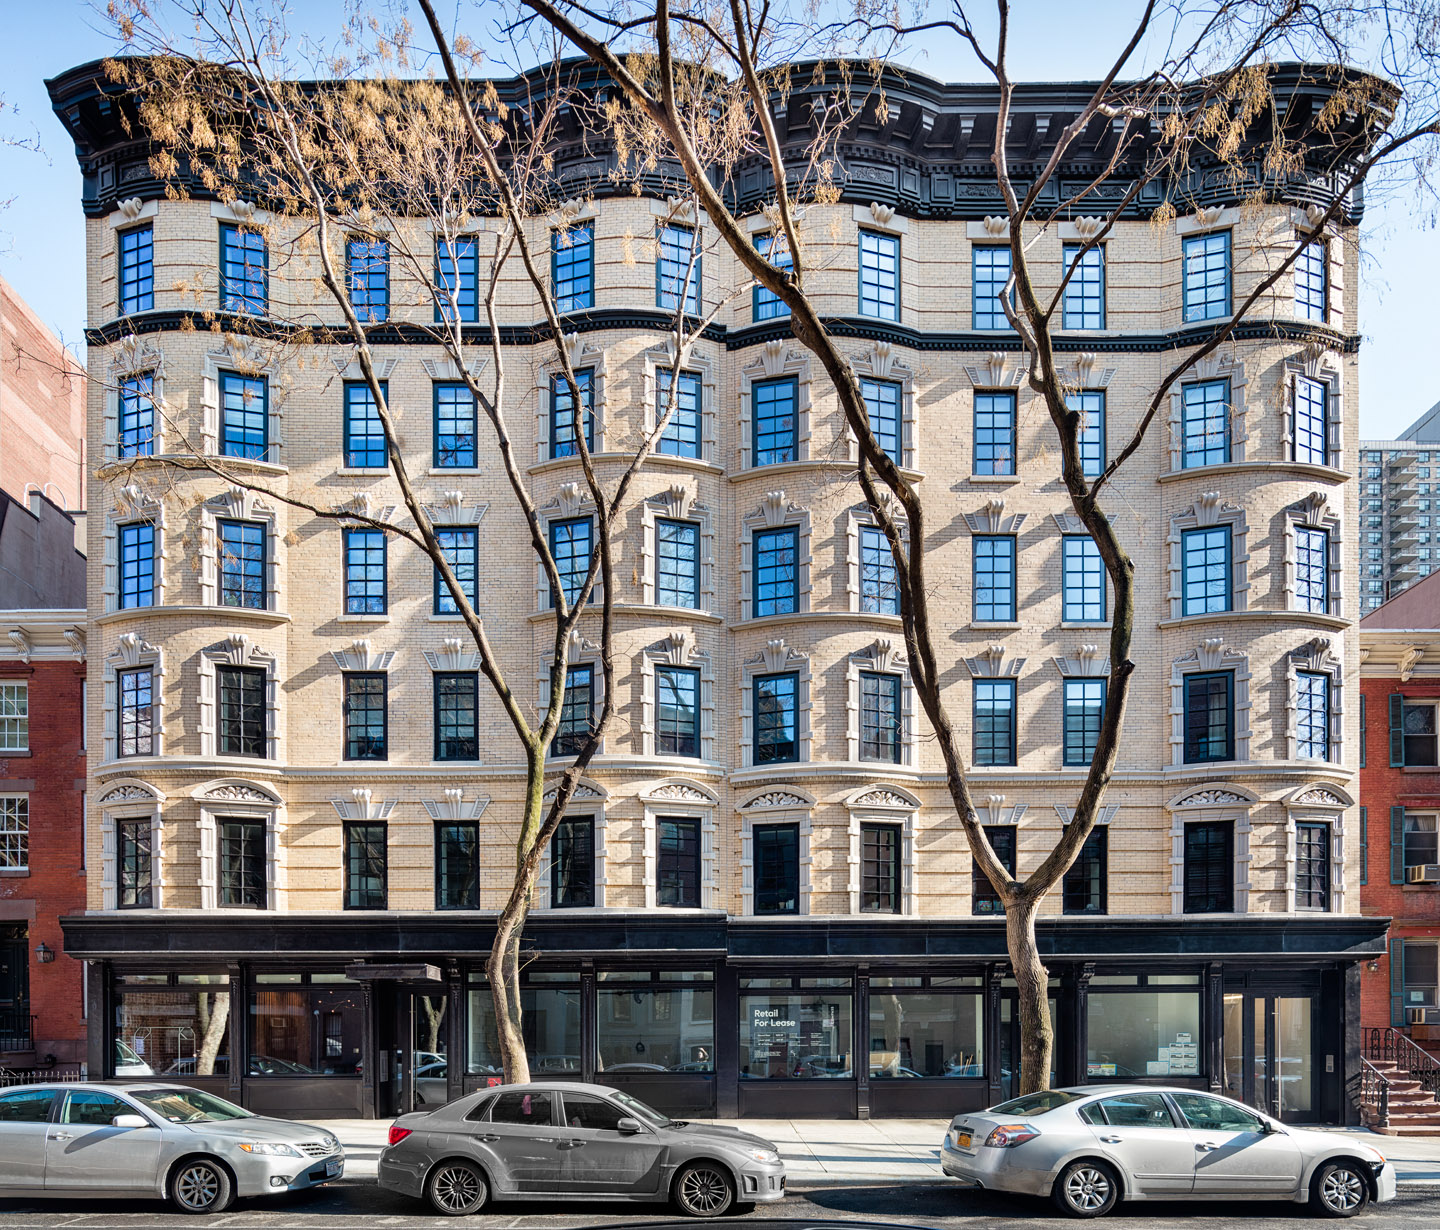 245 east 78th street is presented with the yorkville heritage award - By Friends of the Upper East Side, March 26th, 2019; Photo Credit: Raimond Koch